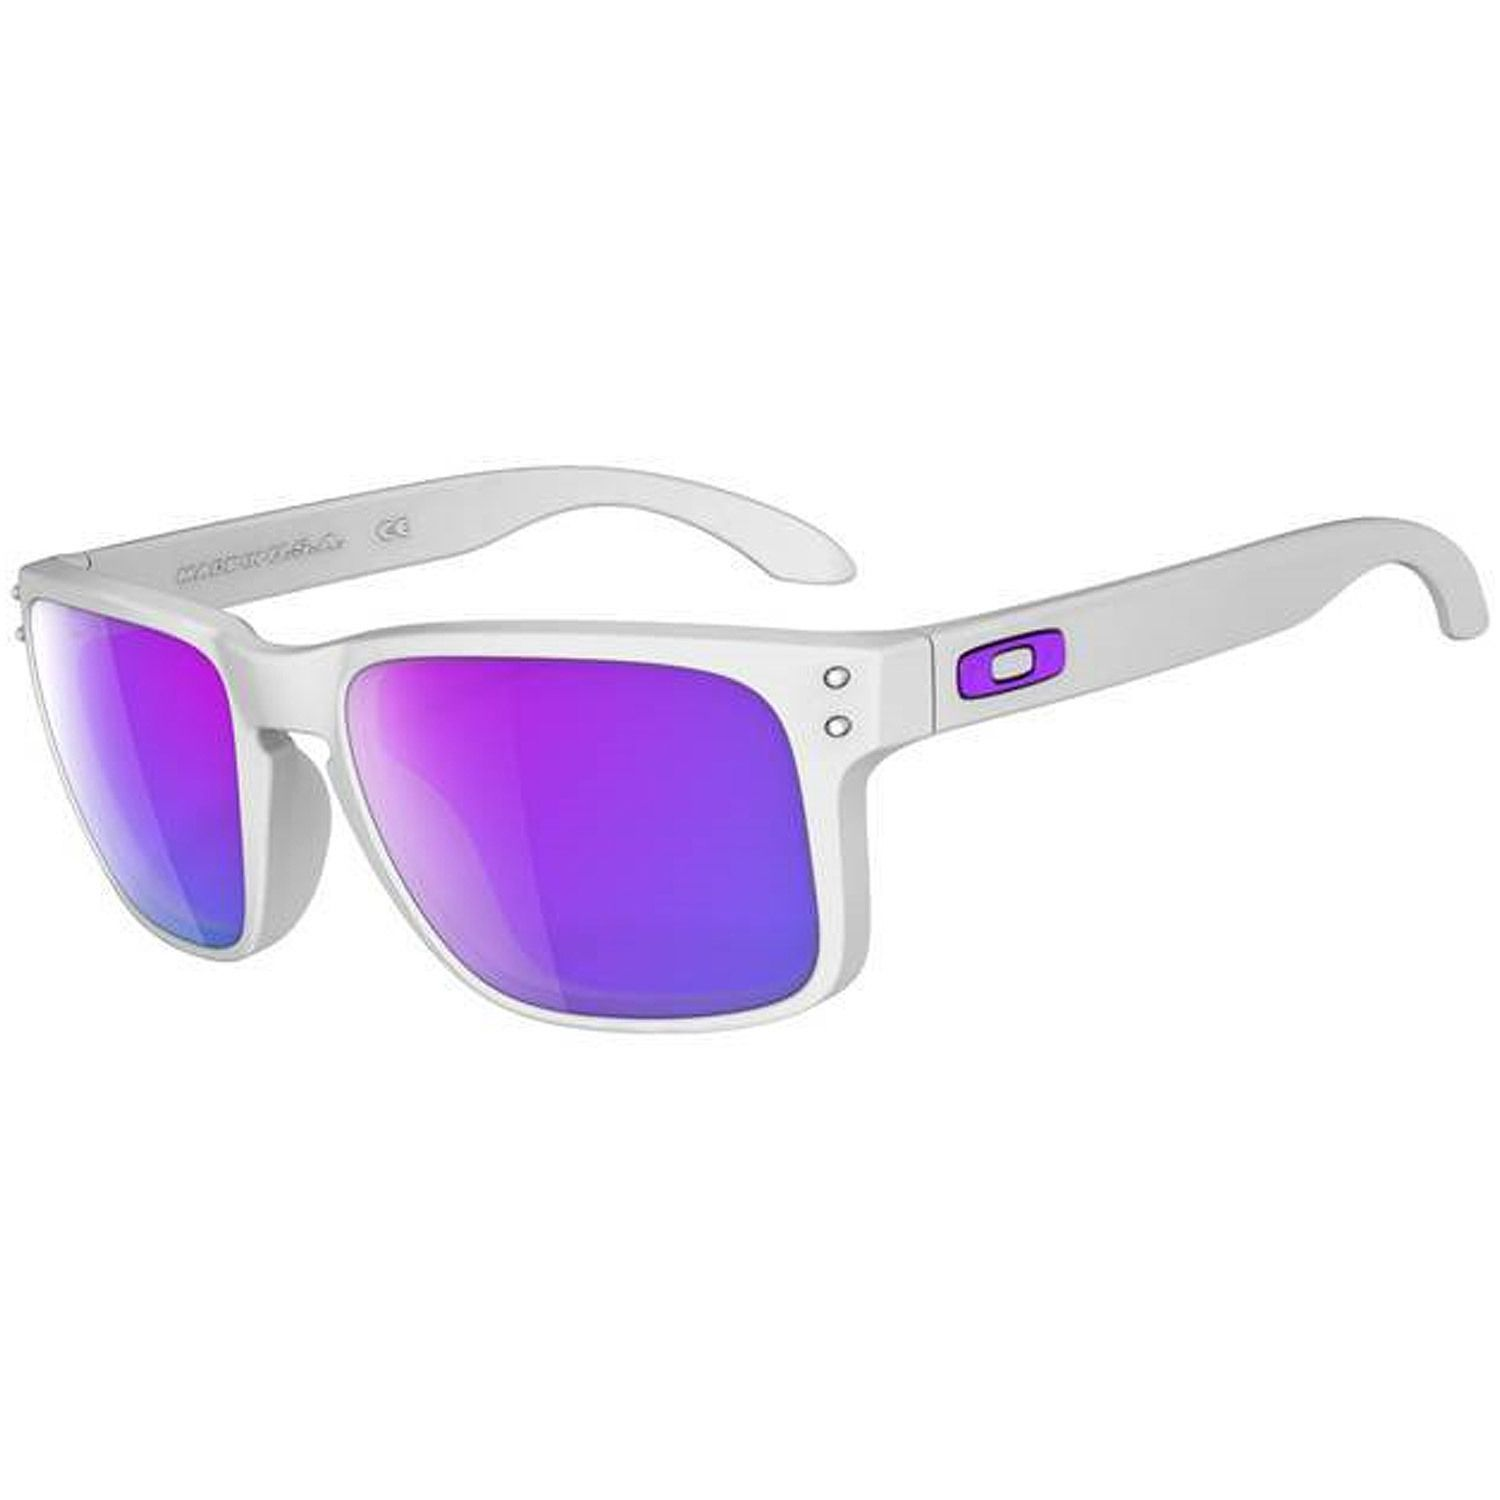 1881be9499 Oakley Given Sunglasses - Breast Cancer Awareness Edition - Womens! Baby  Daddy just ordered me these!